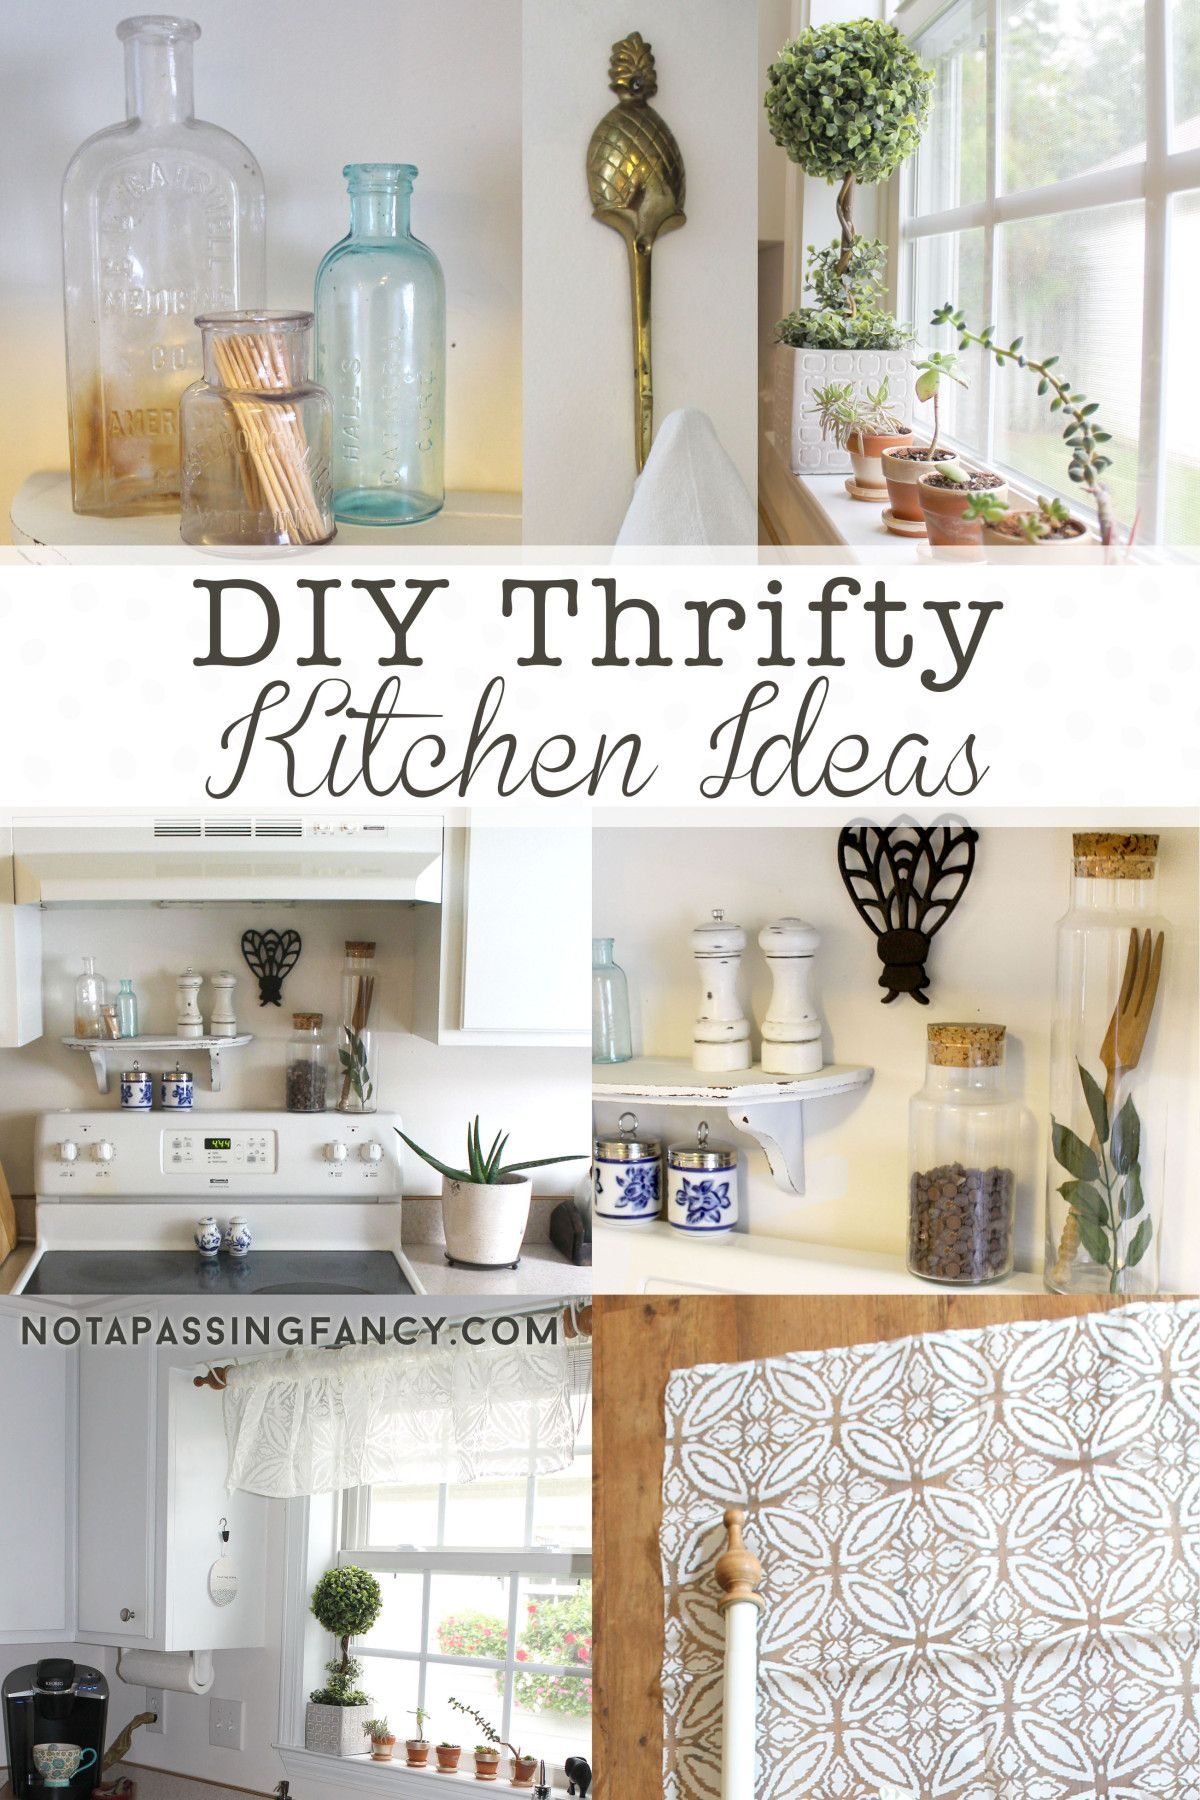 DIY Thrifty Kitchen Ideas - Our Rental Kitchen | Not a Passing Fancy ...